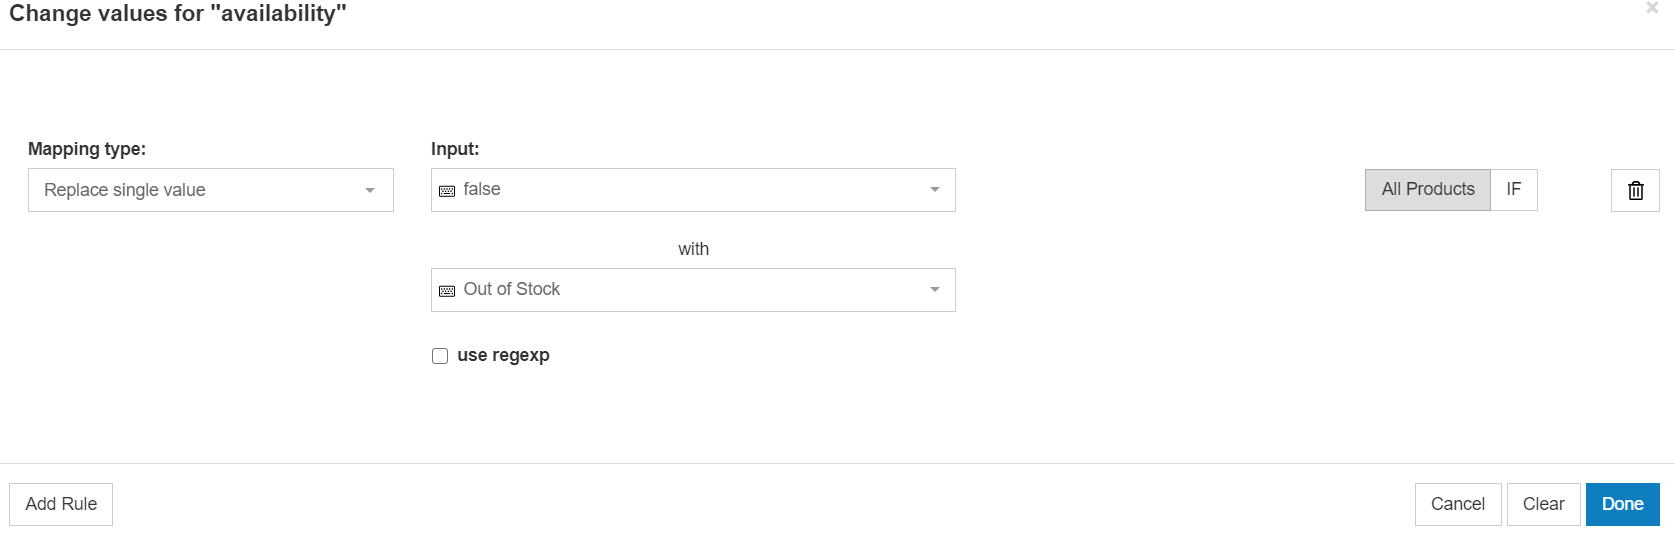 How To Properly Match Shopify Fields With Google Shopping Attributes